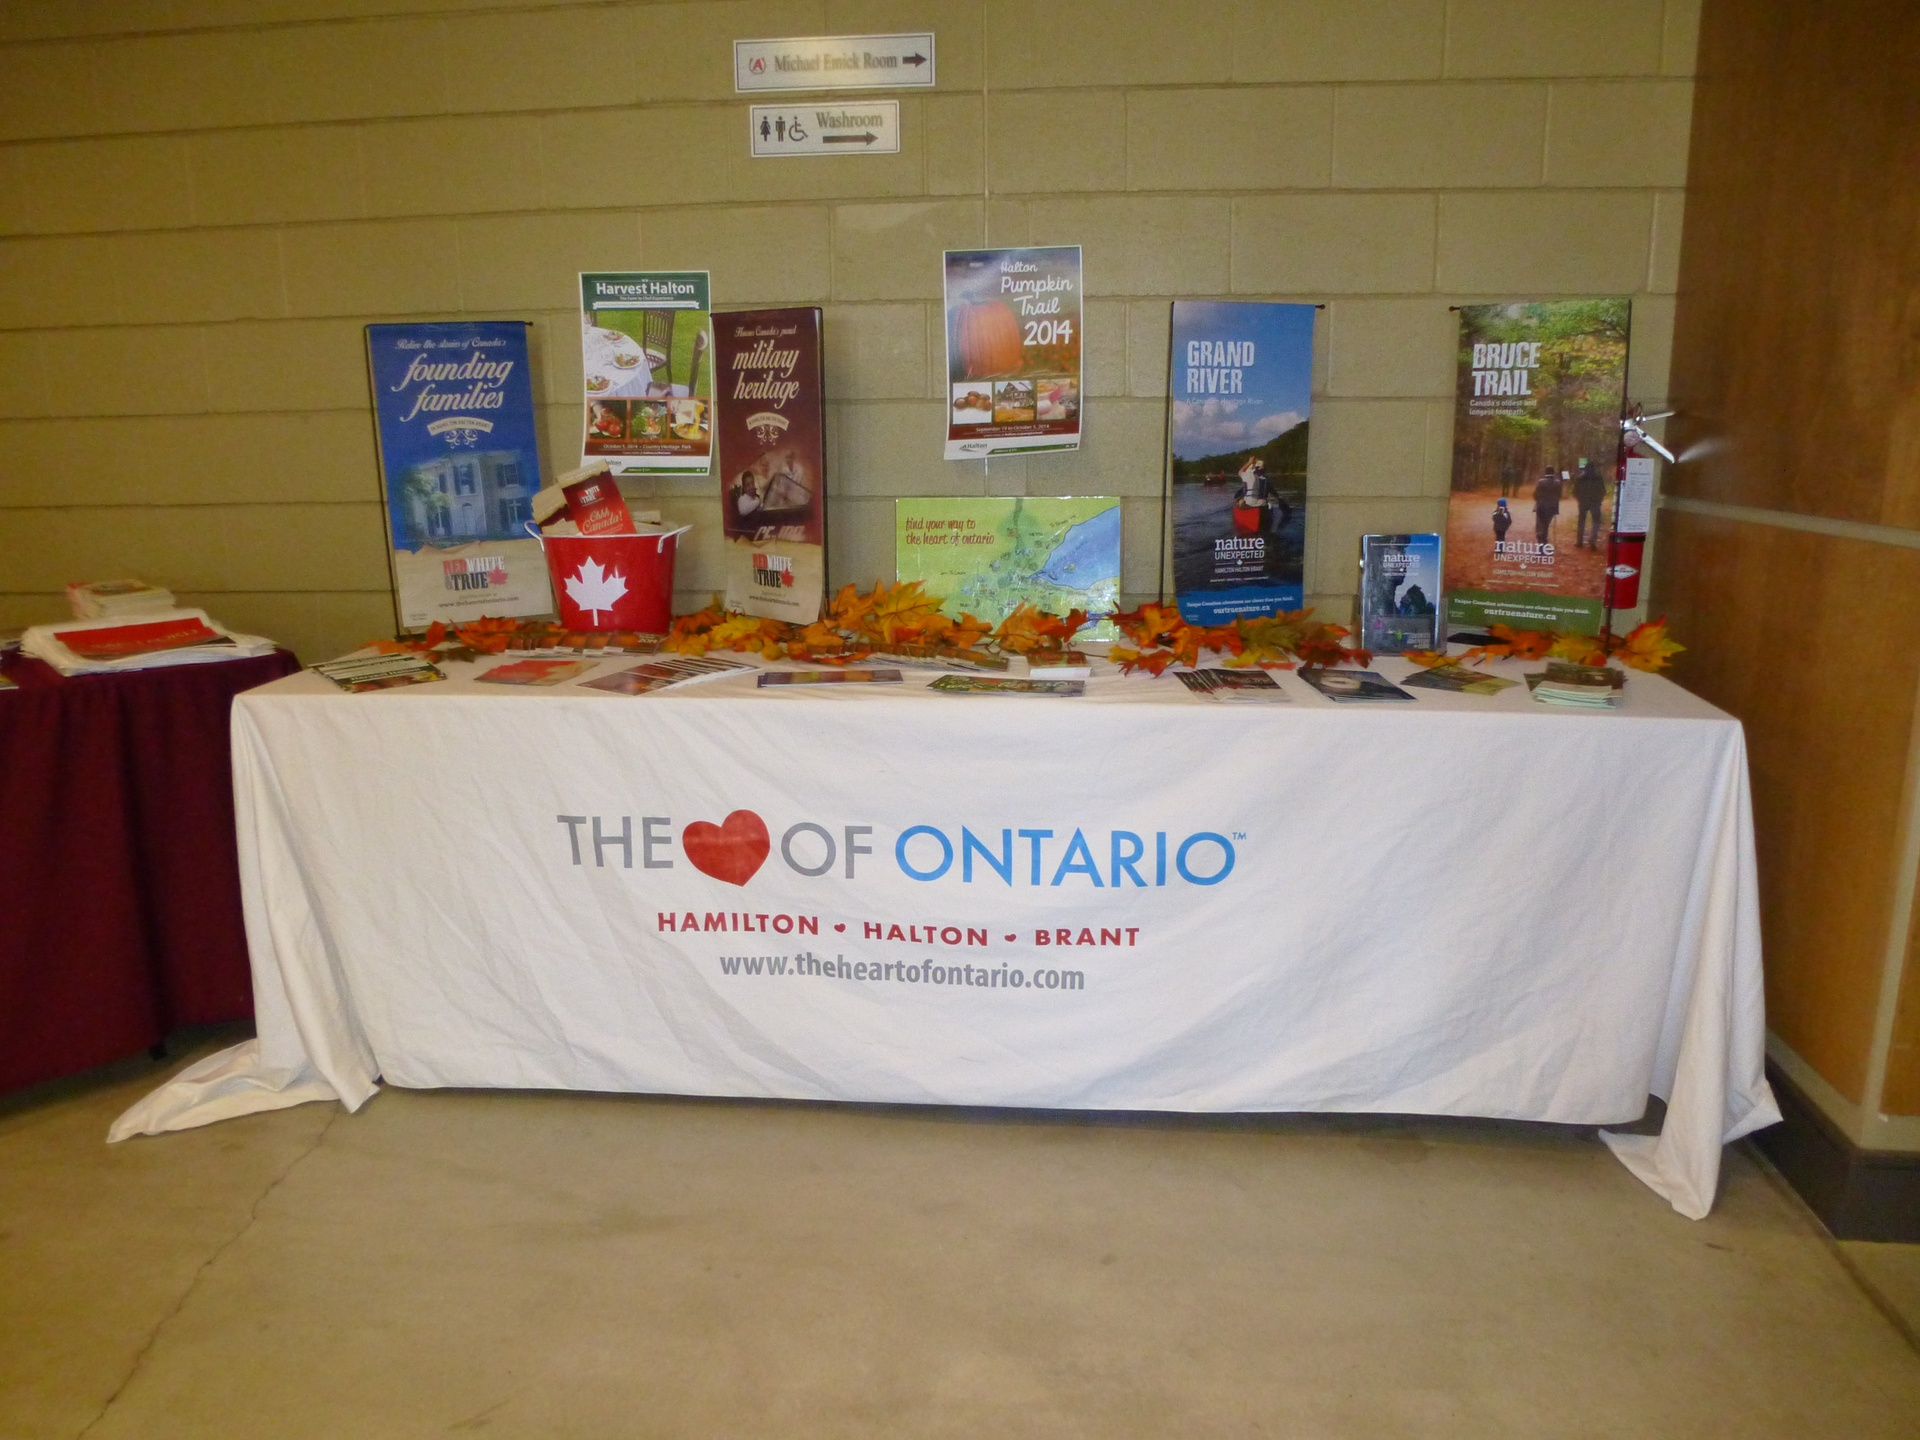 The Heart of Ontario Display